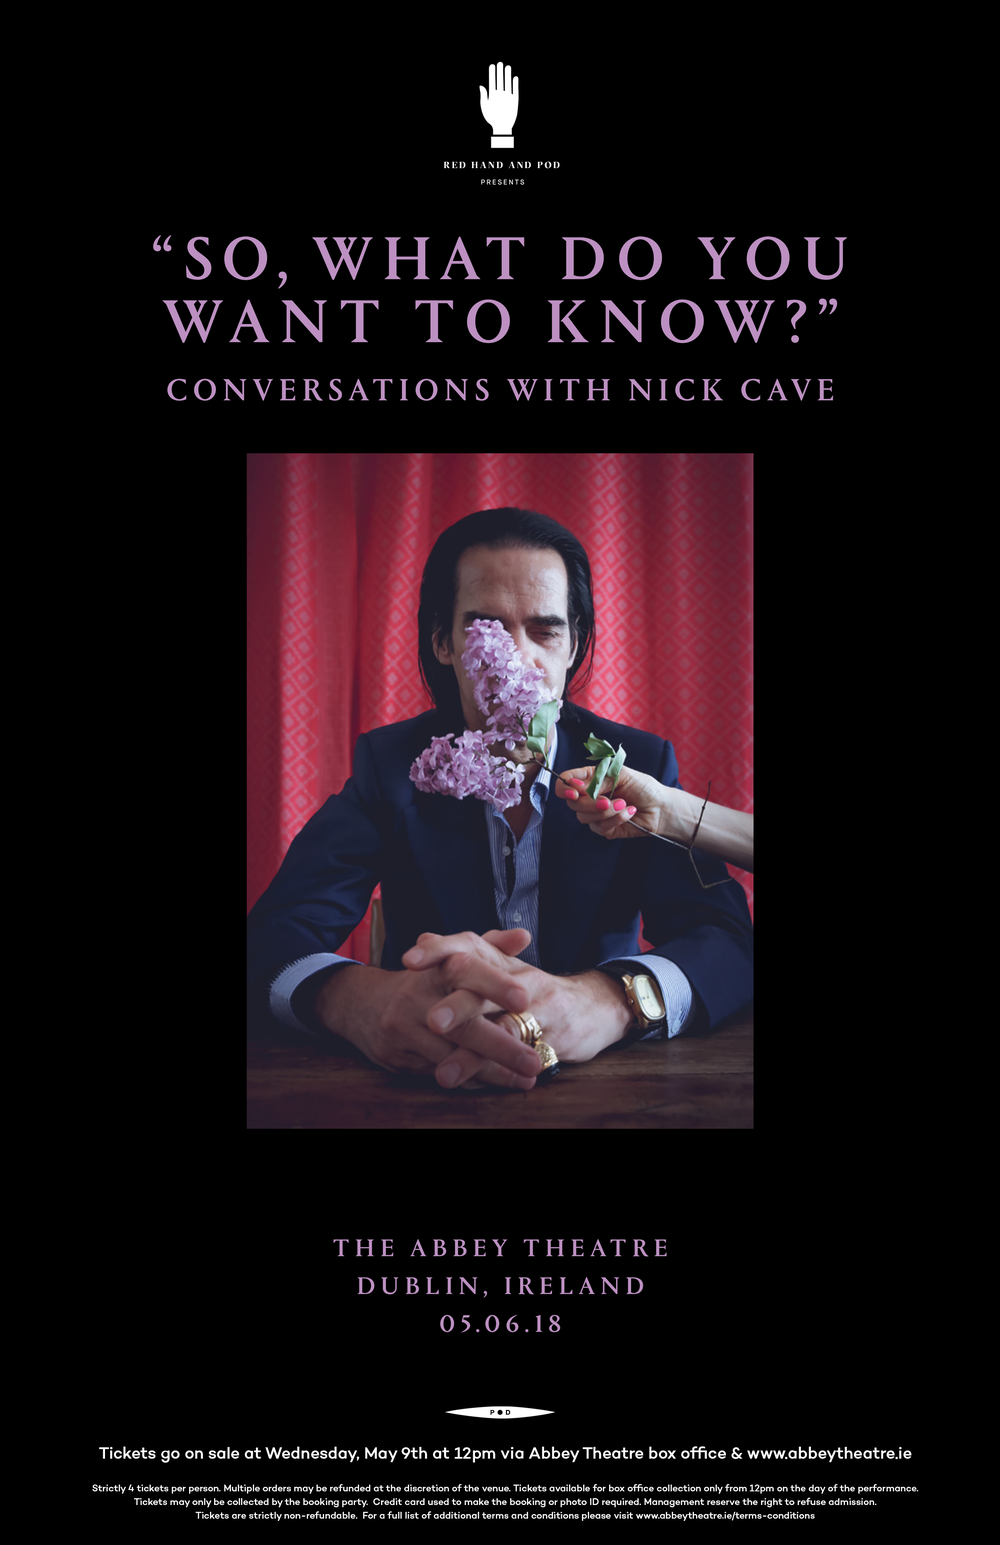 NC_CONVERSATIONS_WITH_NICK_CAVE_DUBLIN_11x17_02(low) copy.png